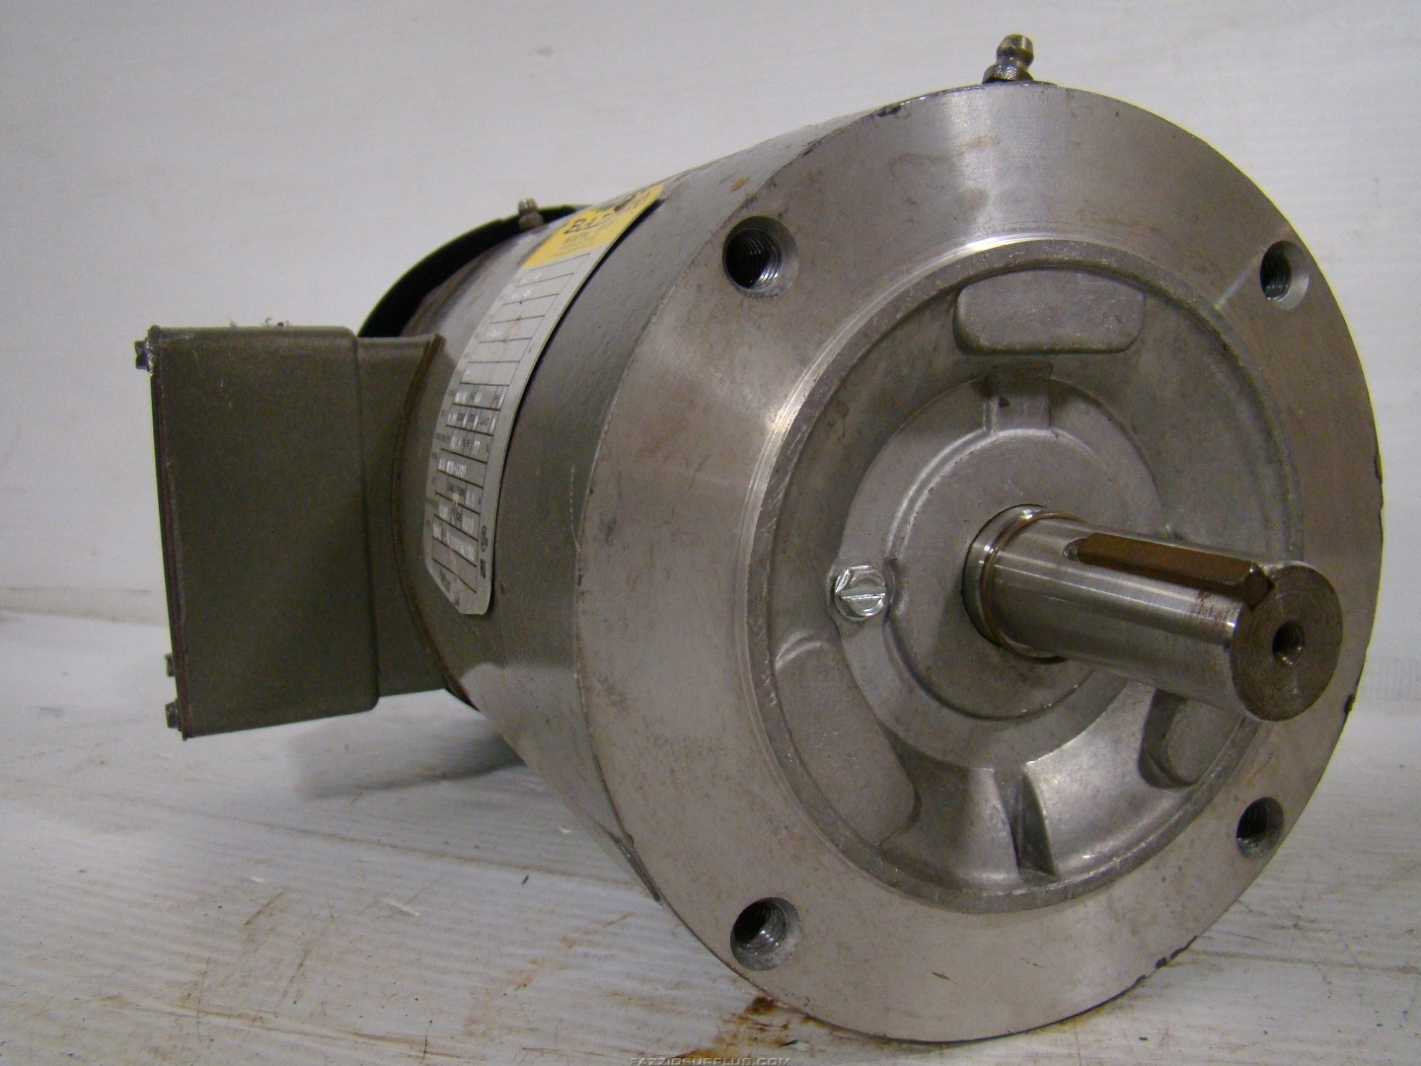 Baldor 2hp electric motor 1451c 230 460v vm35587 ebay for Baldor industrial motor parts